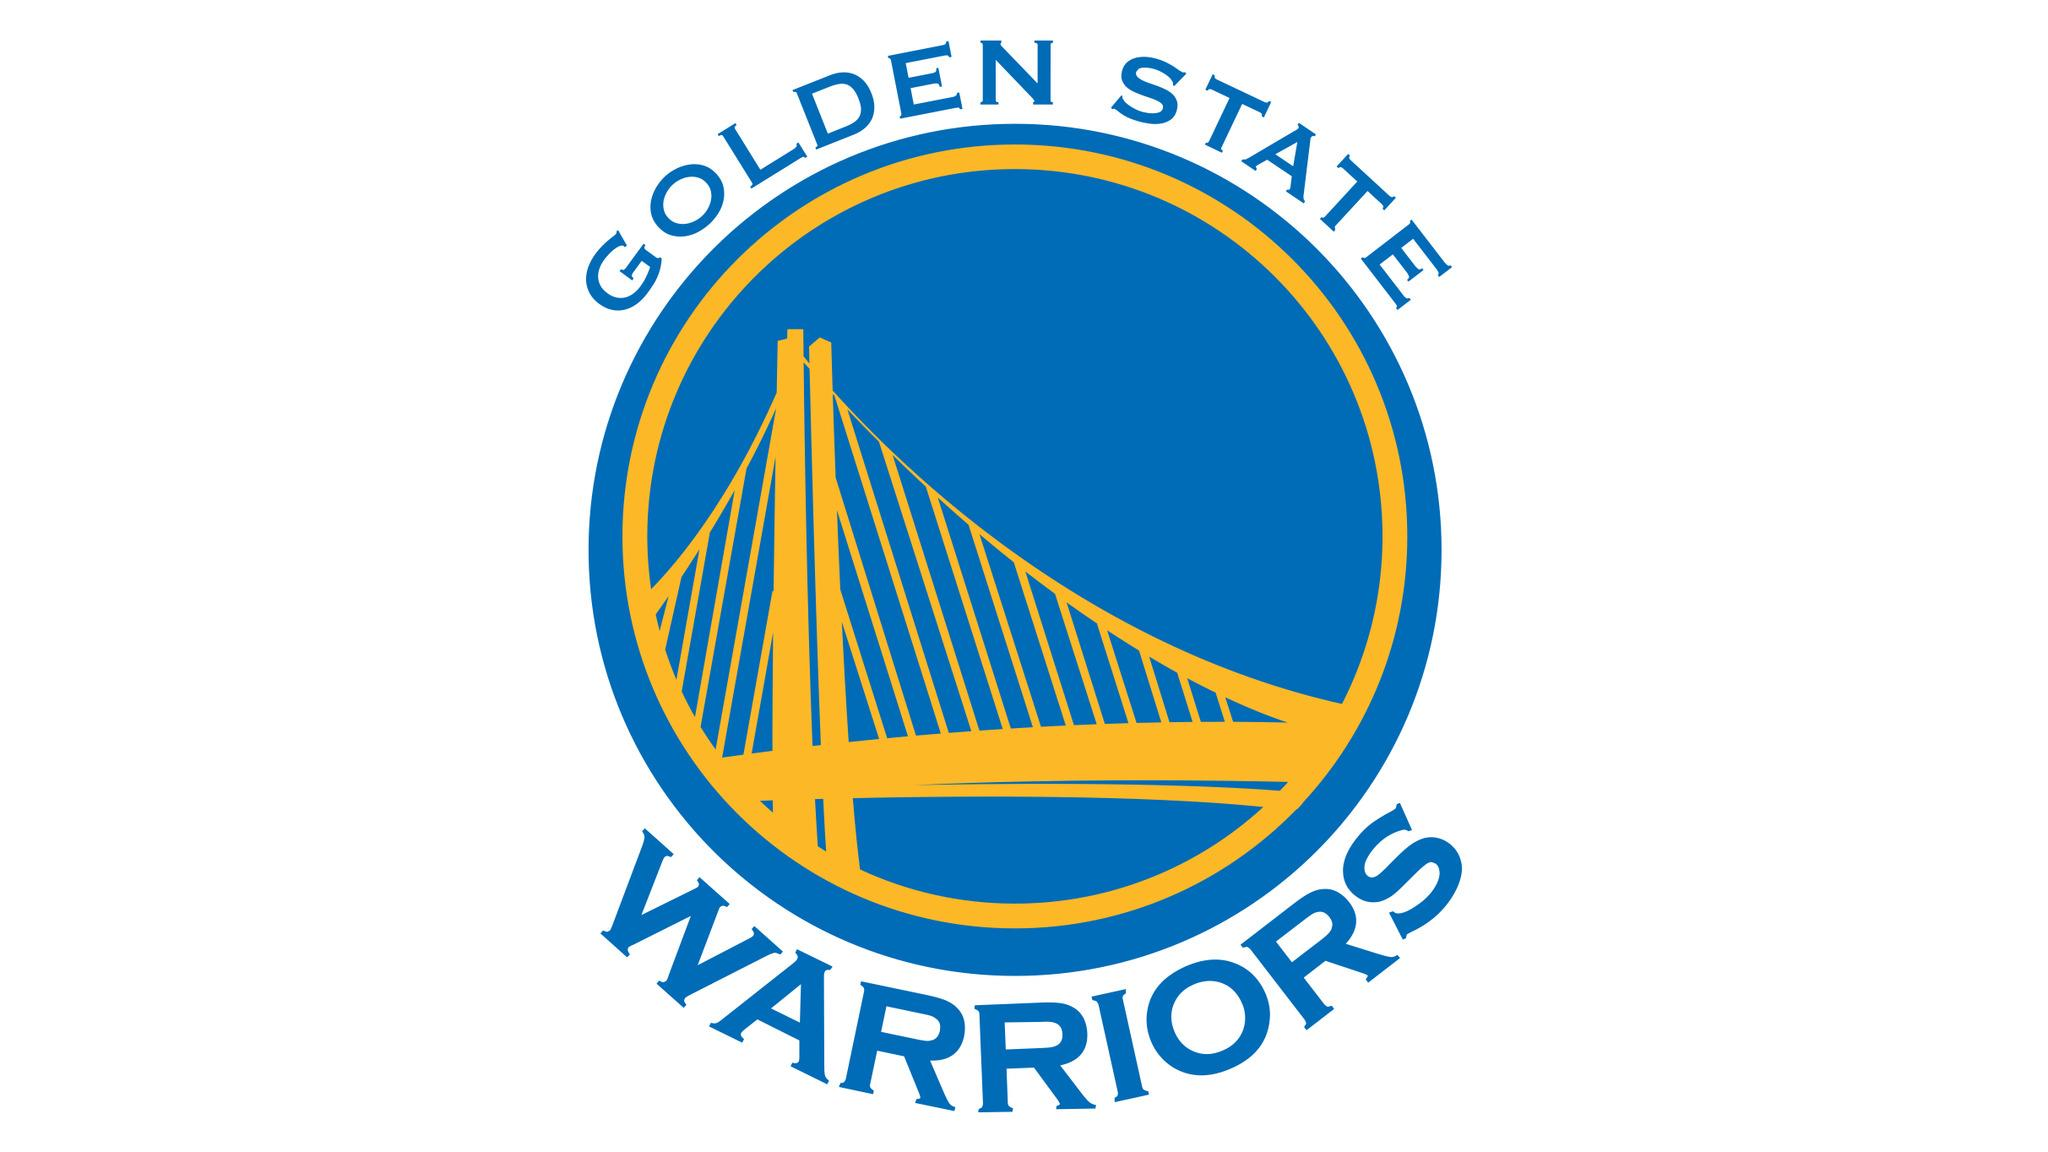 Golden State Warriors vs. Miami Heat - Oakland, CA 94621